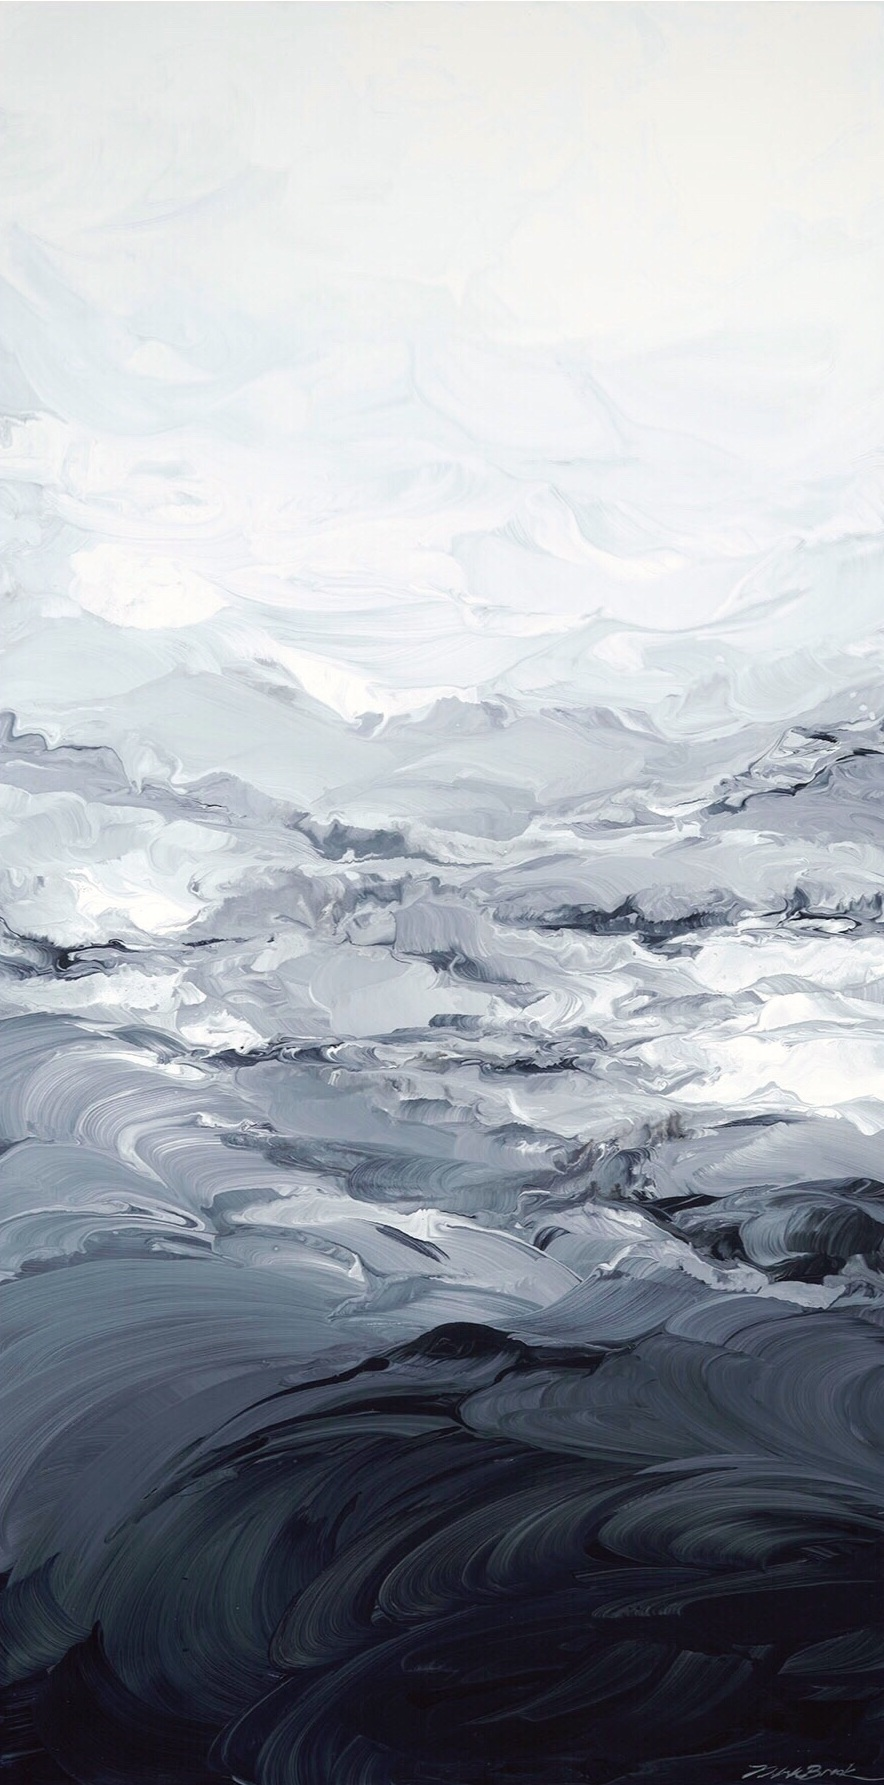 Misty#Acrylic on panel#48 x 24 inches#$2,800